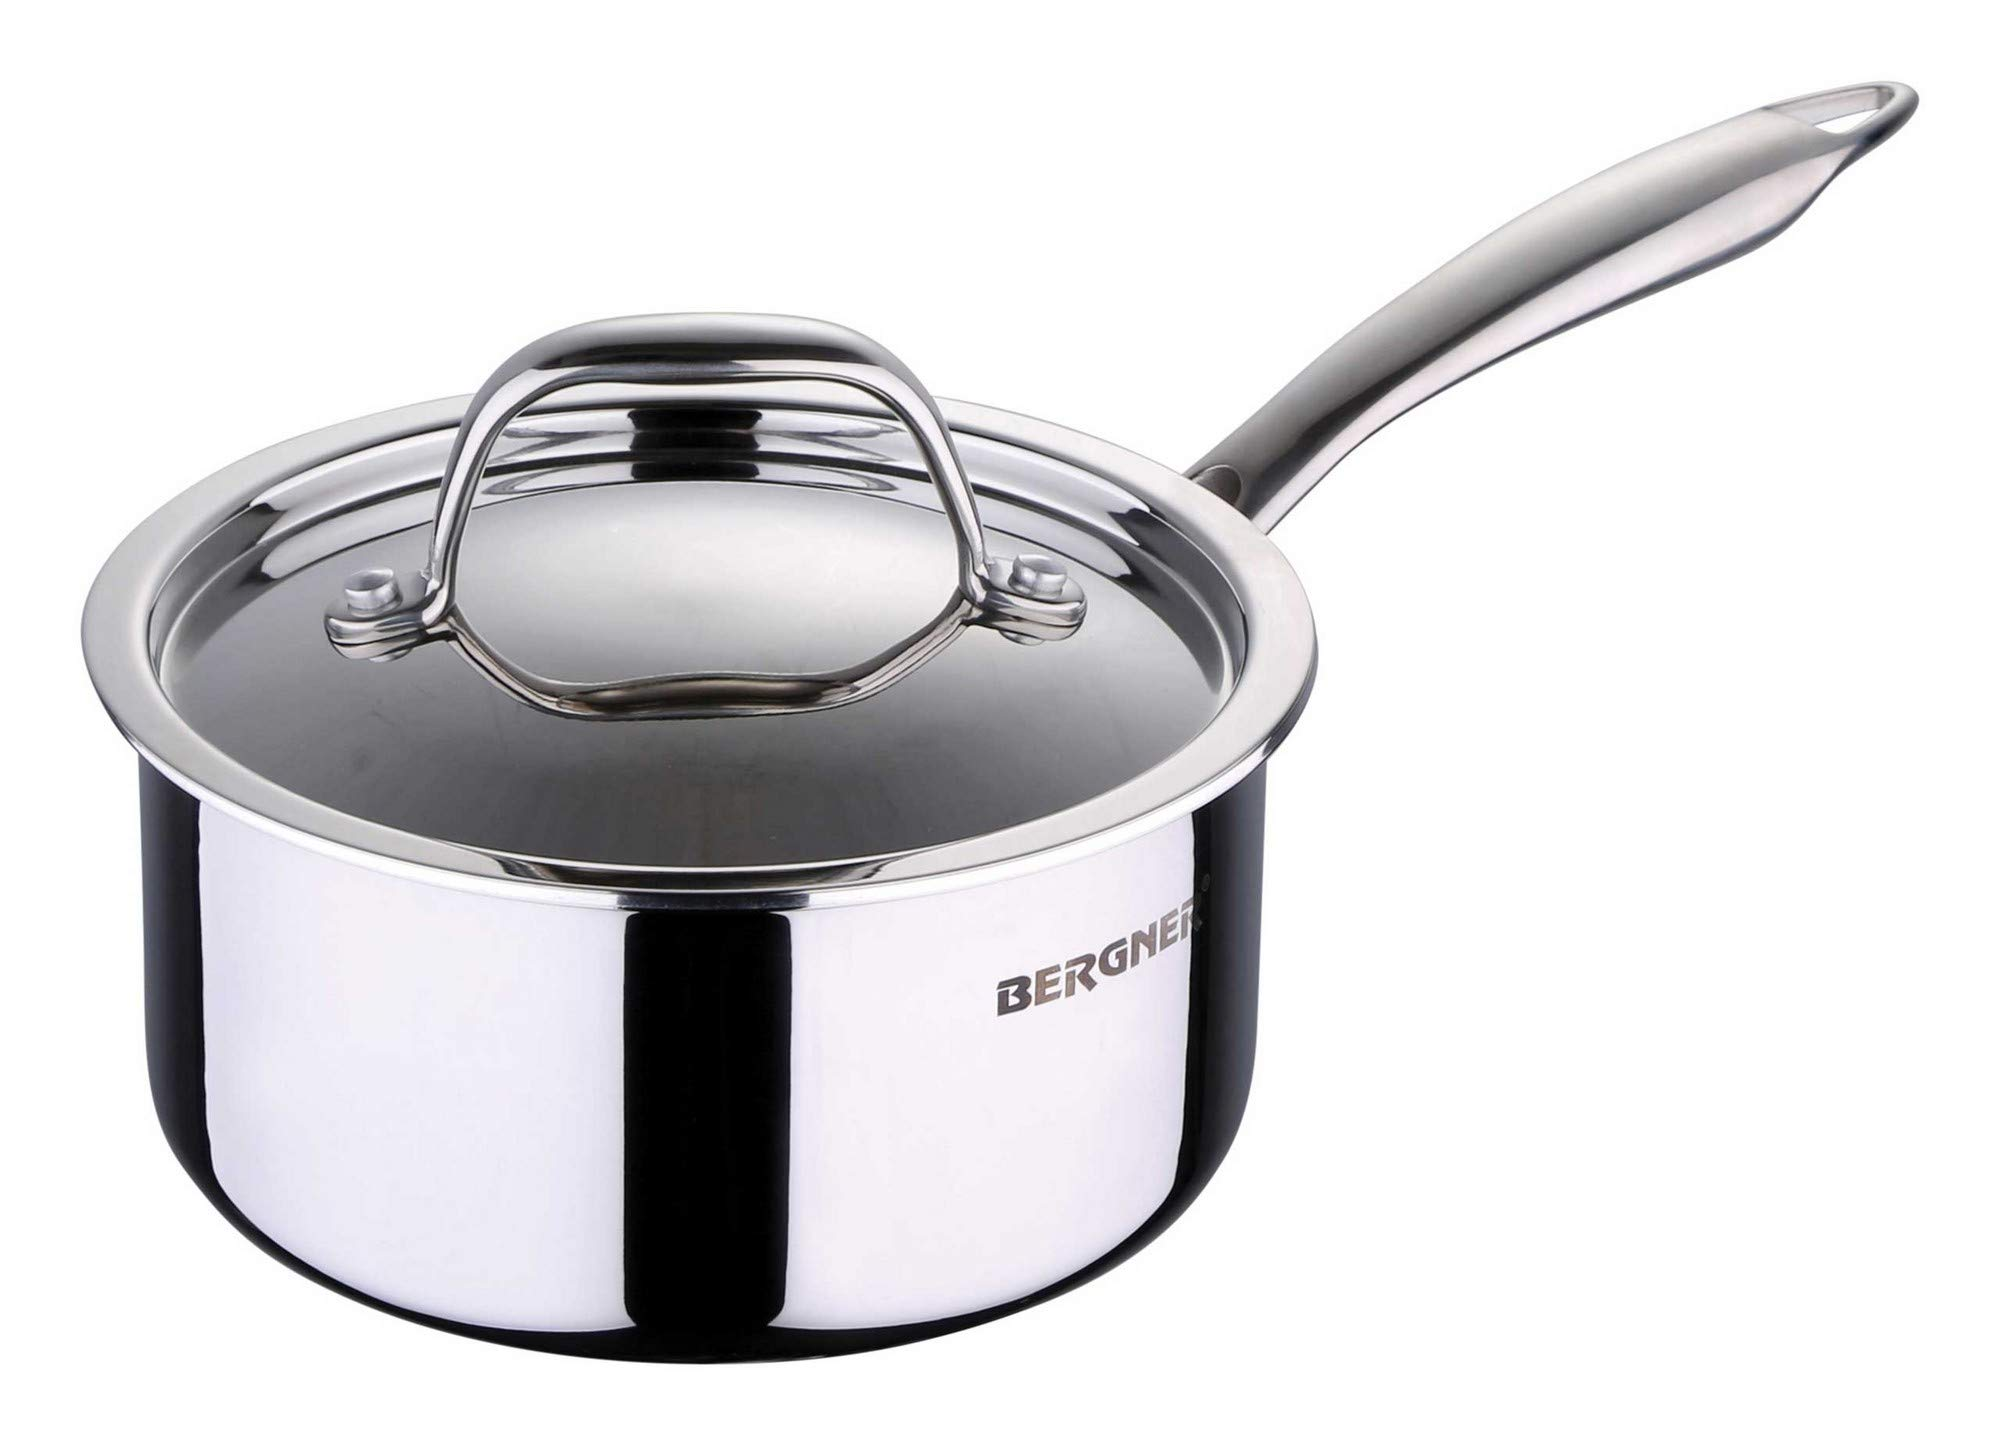 Bergner Argent Triply Stainless Steel Saucepan with Stainless Steel Lid, 18 cm, 2.2 Litres, Induction Base, Silver